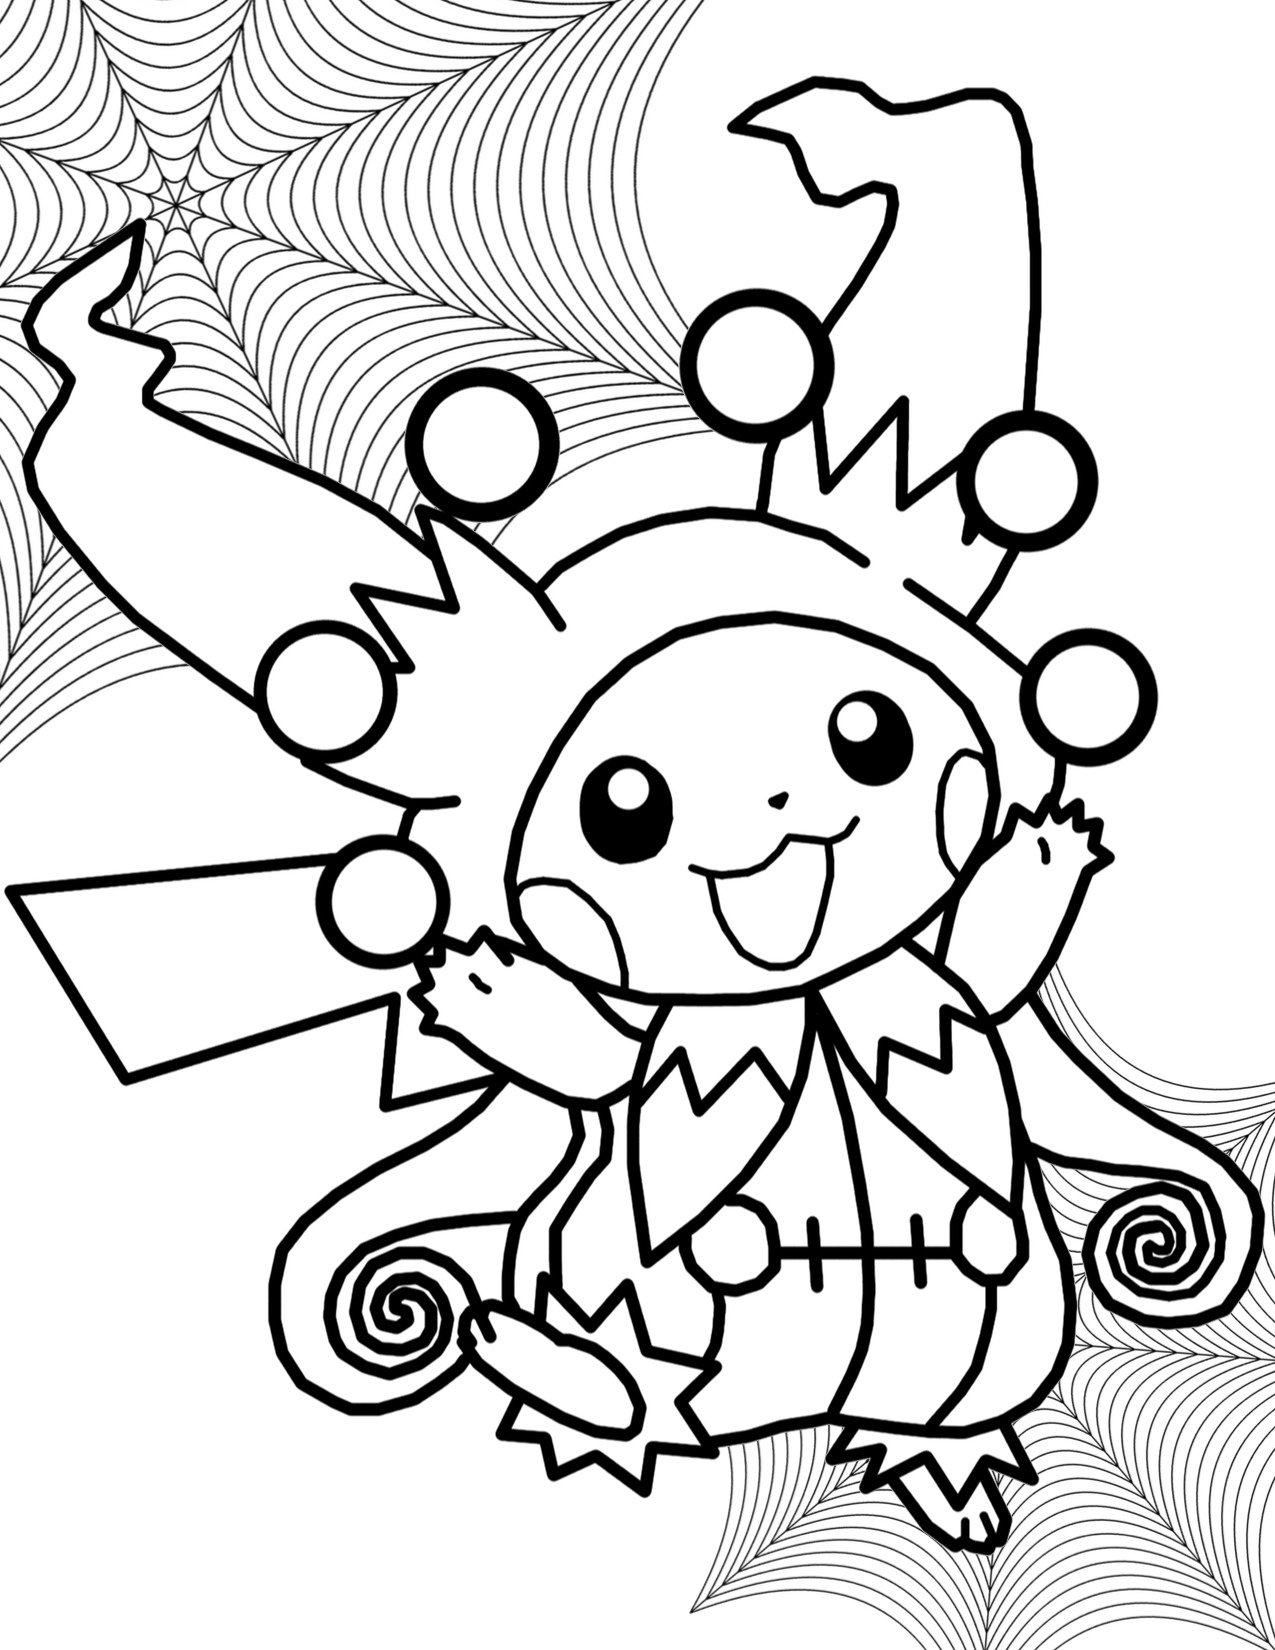 Colormon Here Is The Last Of The Halloween Coloring